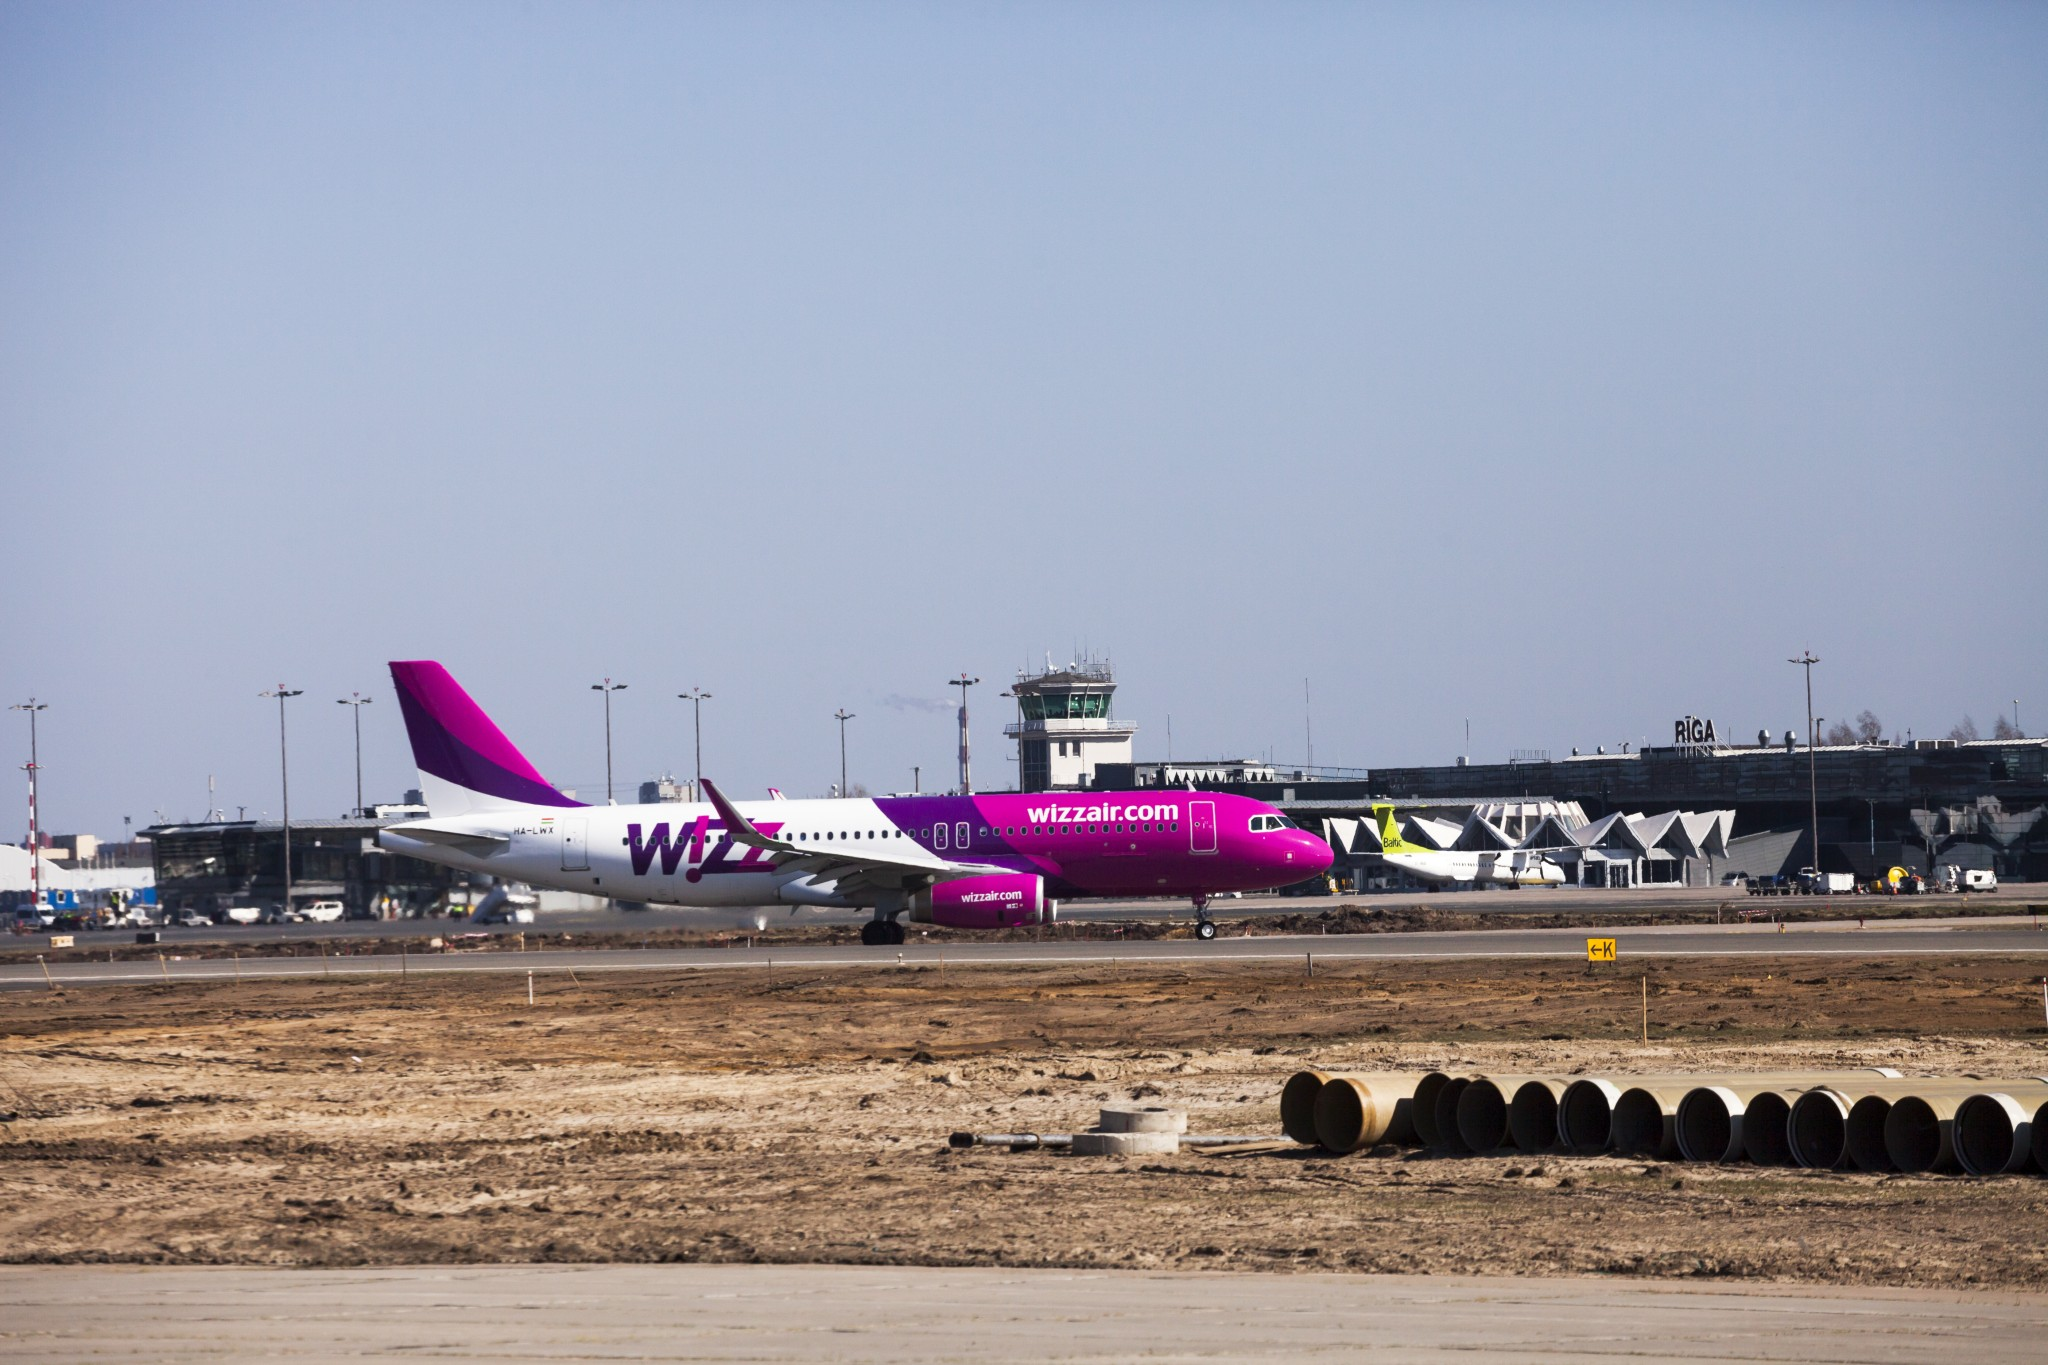 wizz a320 on ground